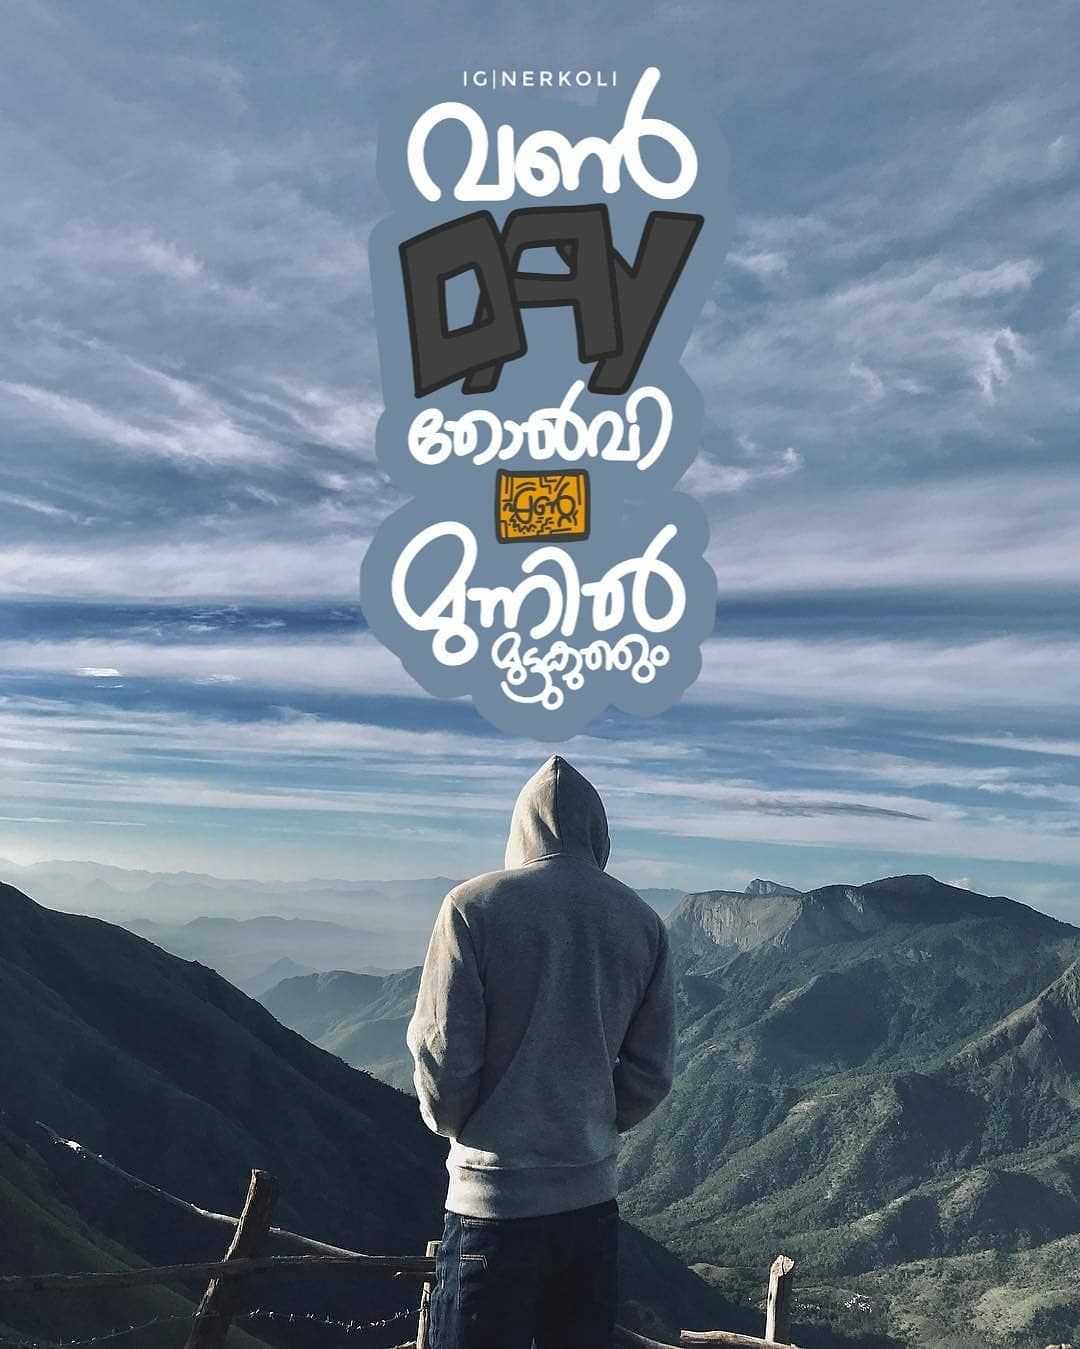 Pin by Afrin Tc on I am a MALLU (With images) | Malayalam ...